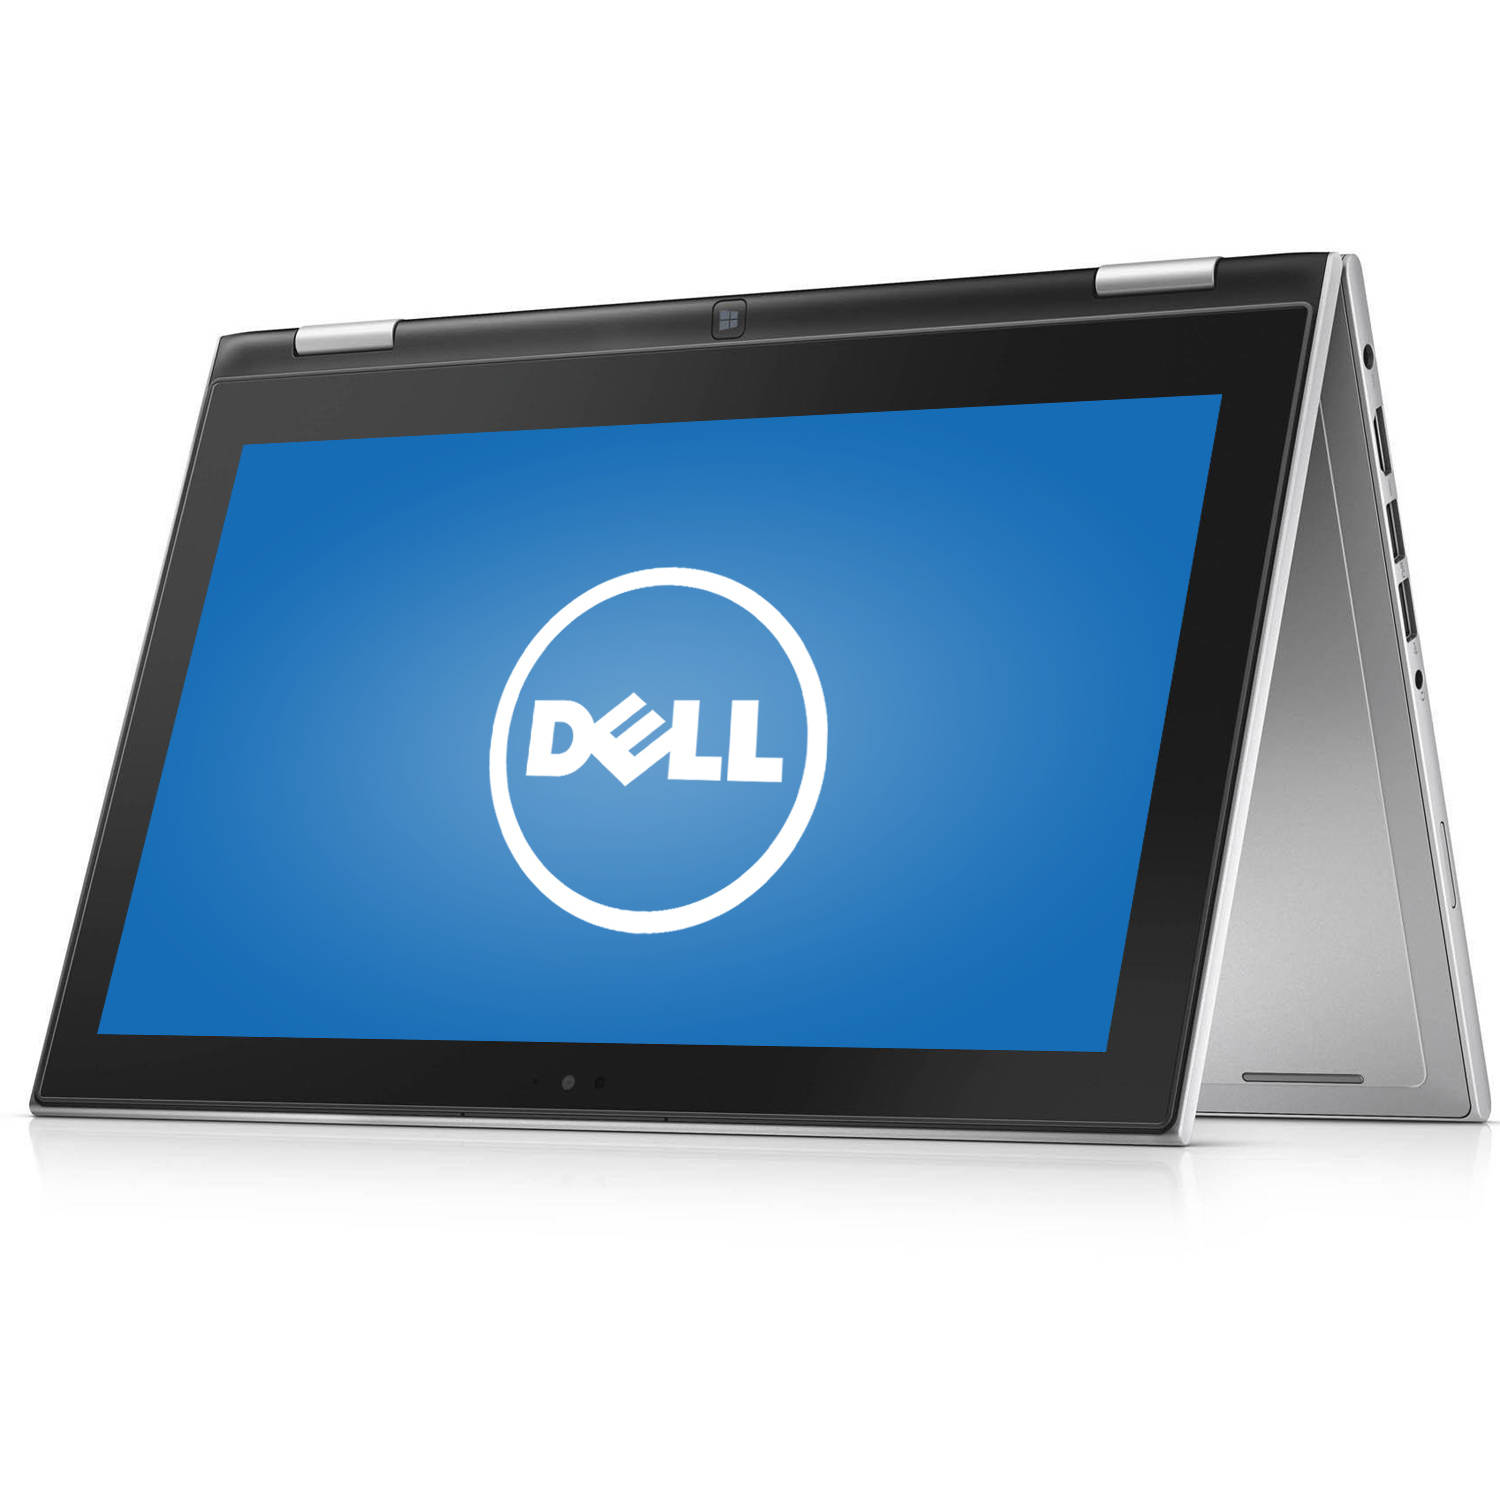 "Refurbished Dell Inspiron 3157 11.6"" Laptop, Touchscreen, 2-in-1, Windows 10, Intel Celeron N3050 Processor, 2GB RAM, 32GB eMMC Storage"